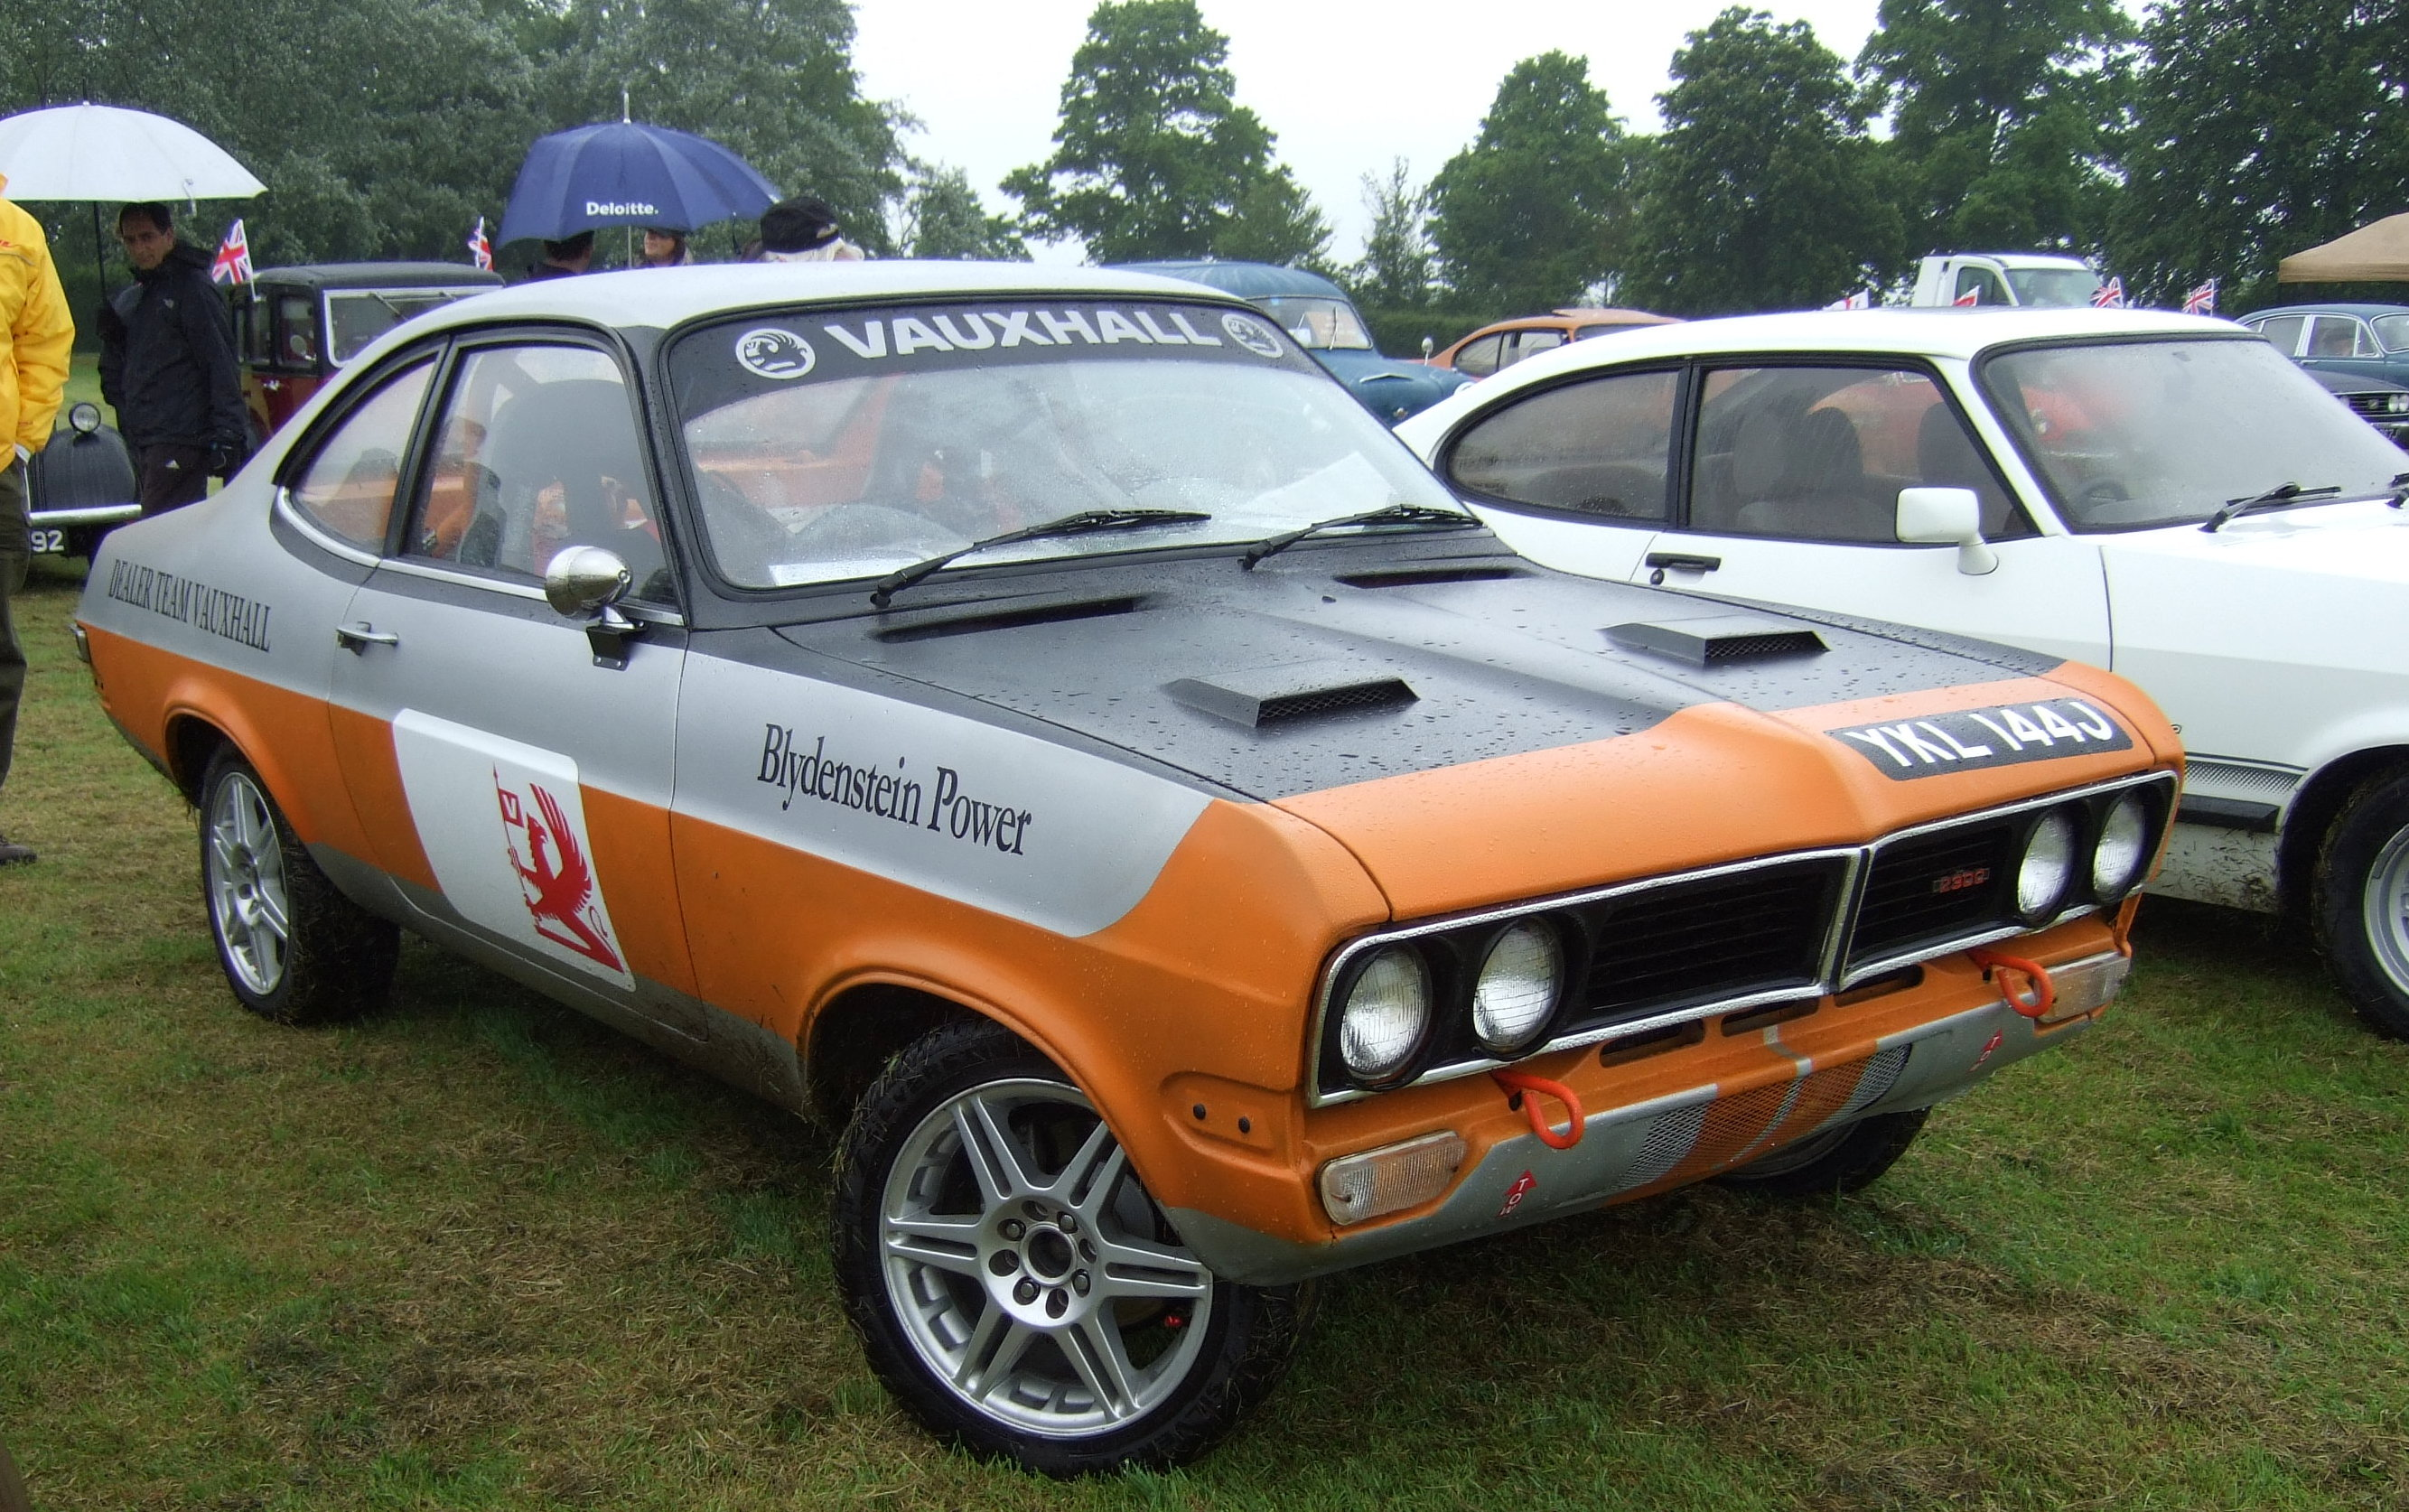 VAUXHALL rally car by Sceptre63 on DeviantArt